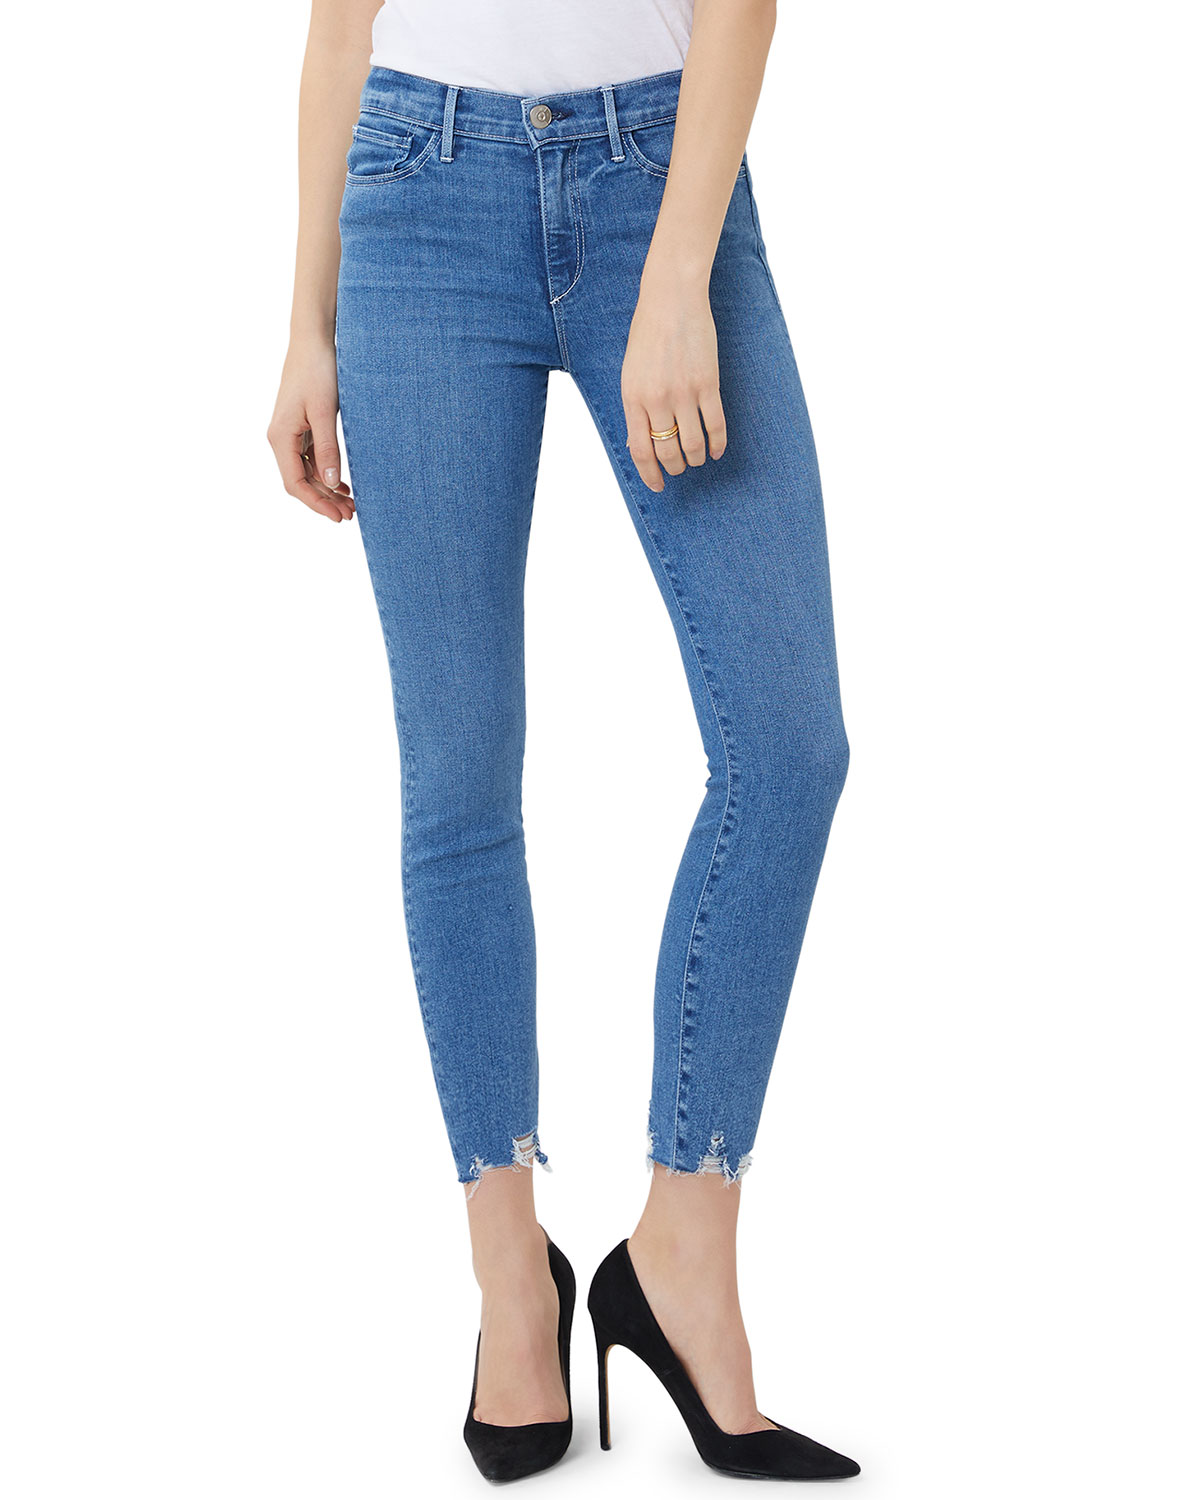 3x1 Jeans MID-RISE SKINNY CROP JEANS WITH CHEWED HEM